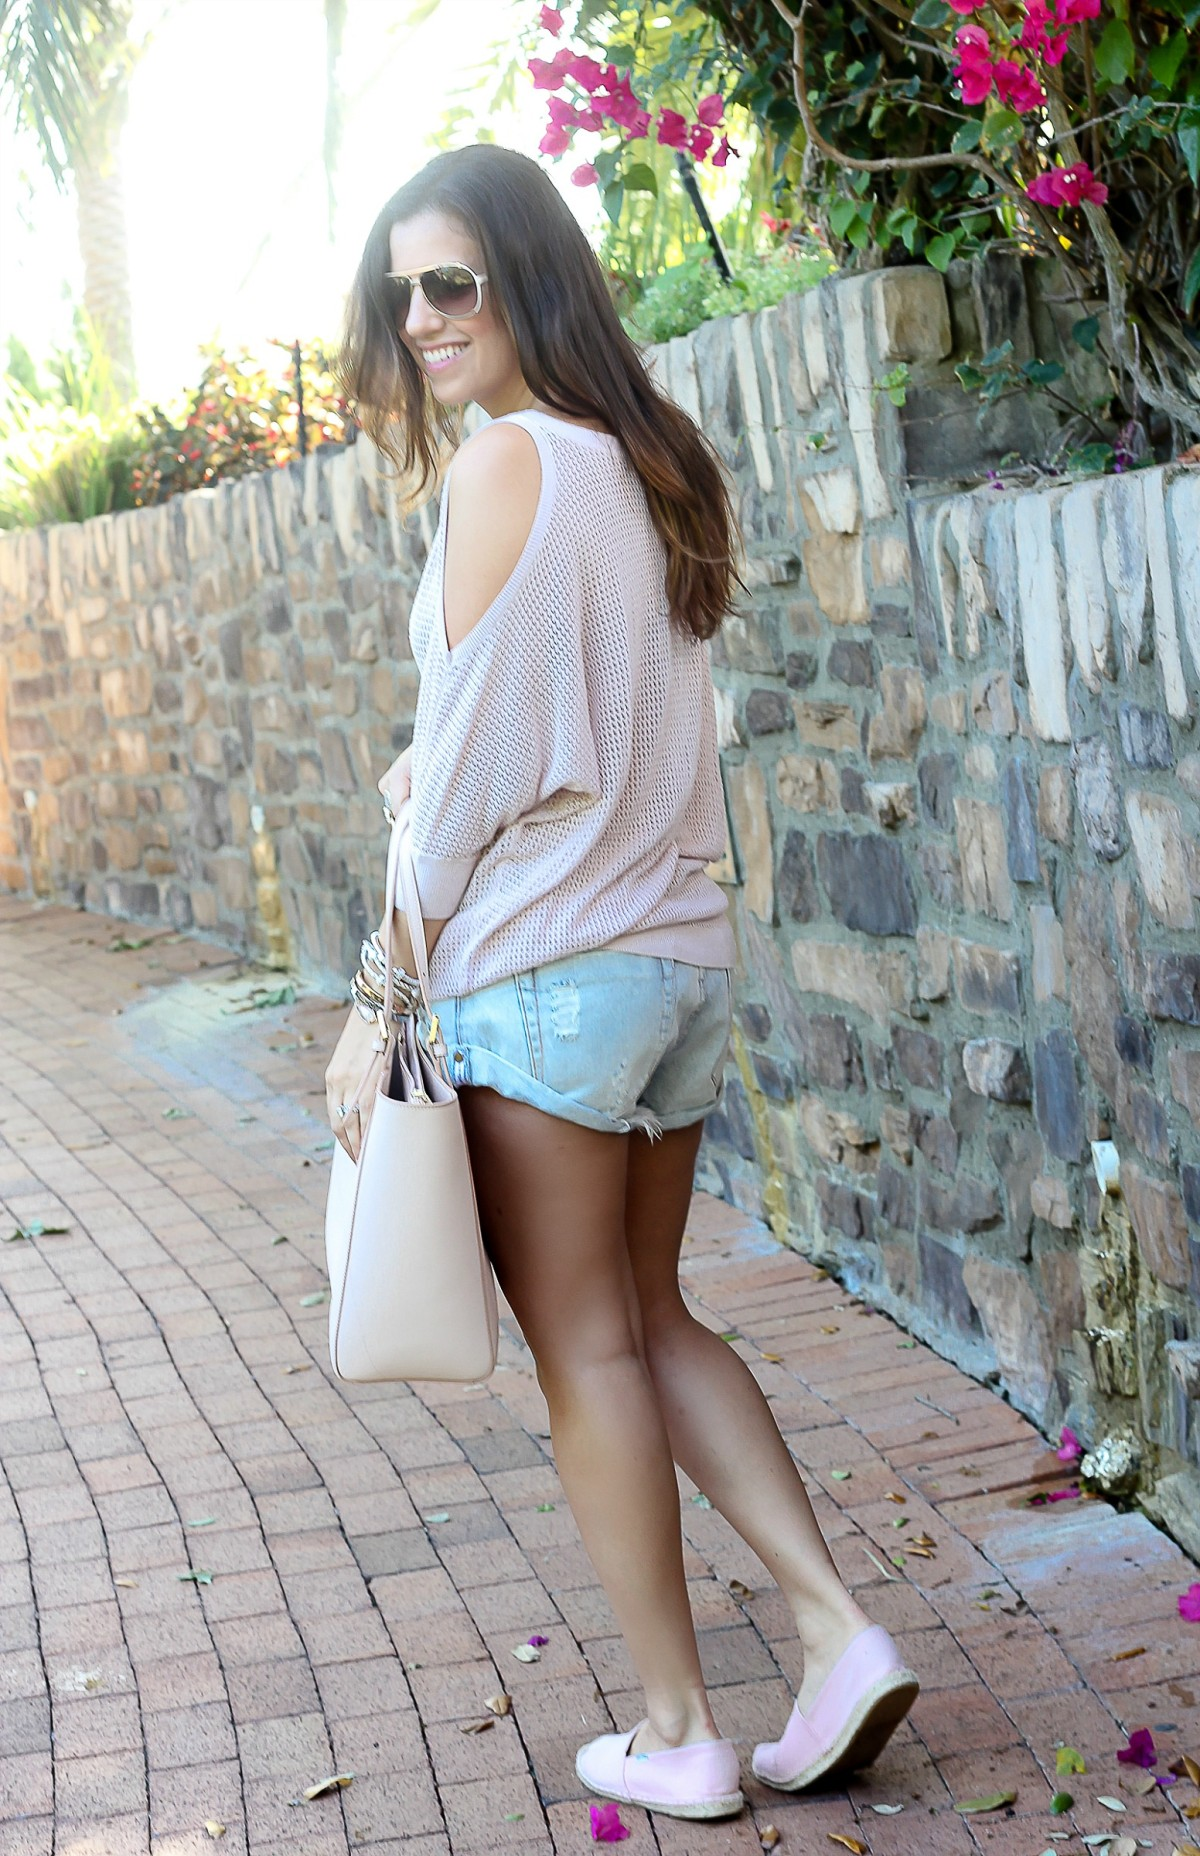 style collective blogging community, pantone color of the year, rose quartz, serenity